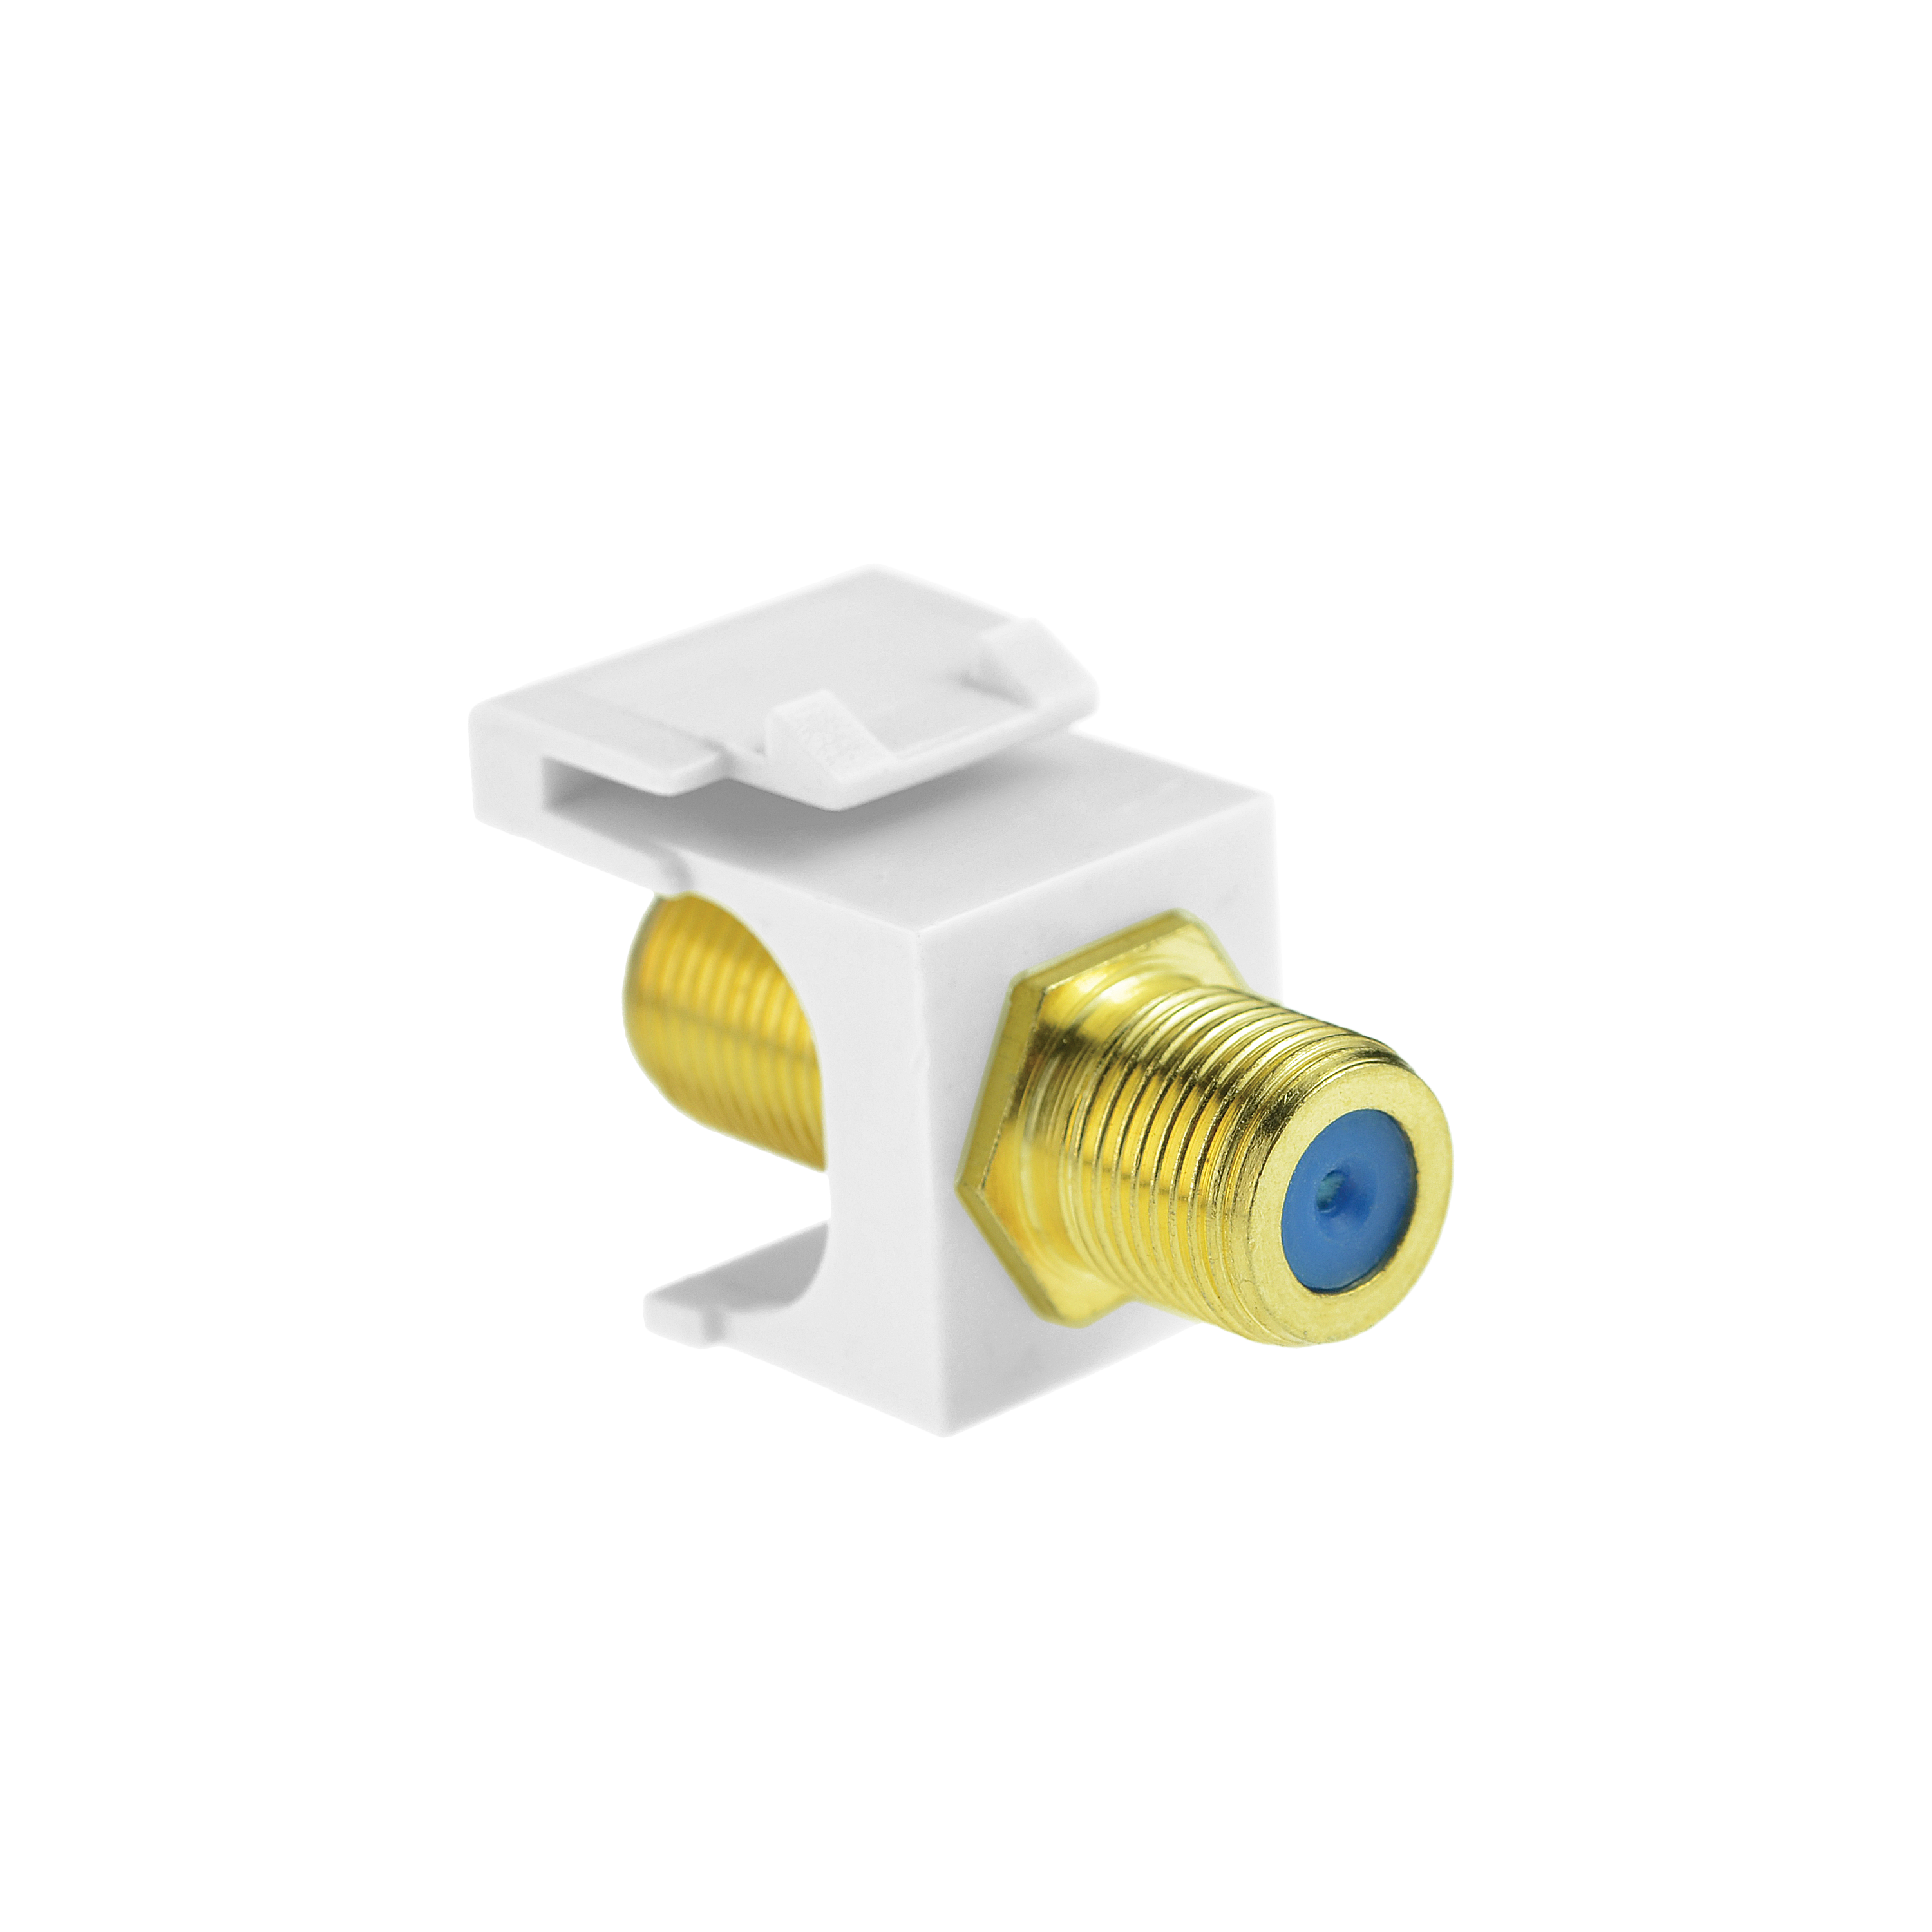 Shop New Coaxial Keystone Jack White Gold Plated Rg6 Insert For Wiring Wall Plate 5 Pack Part 51j F81 Wh 5pk